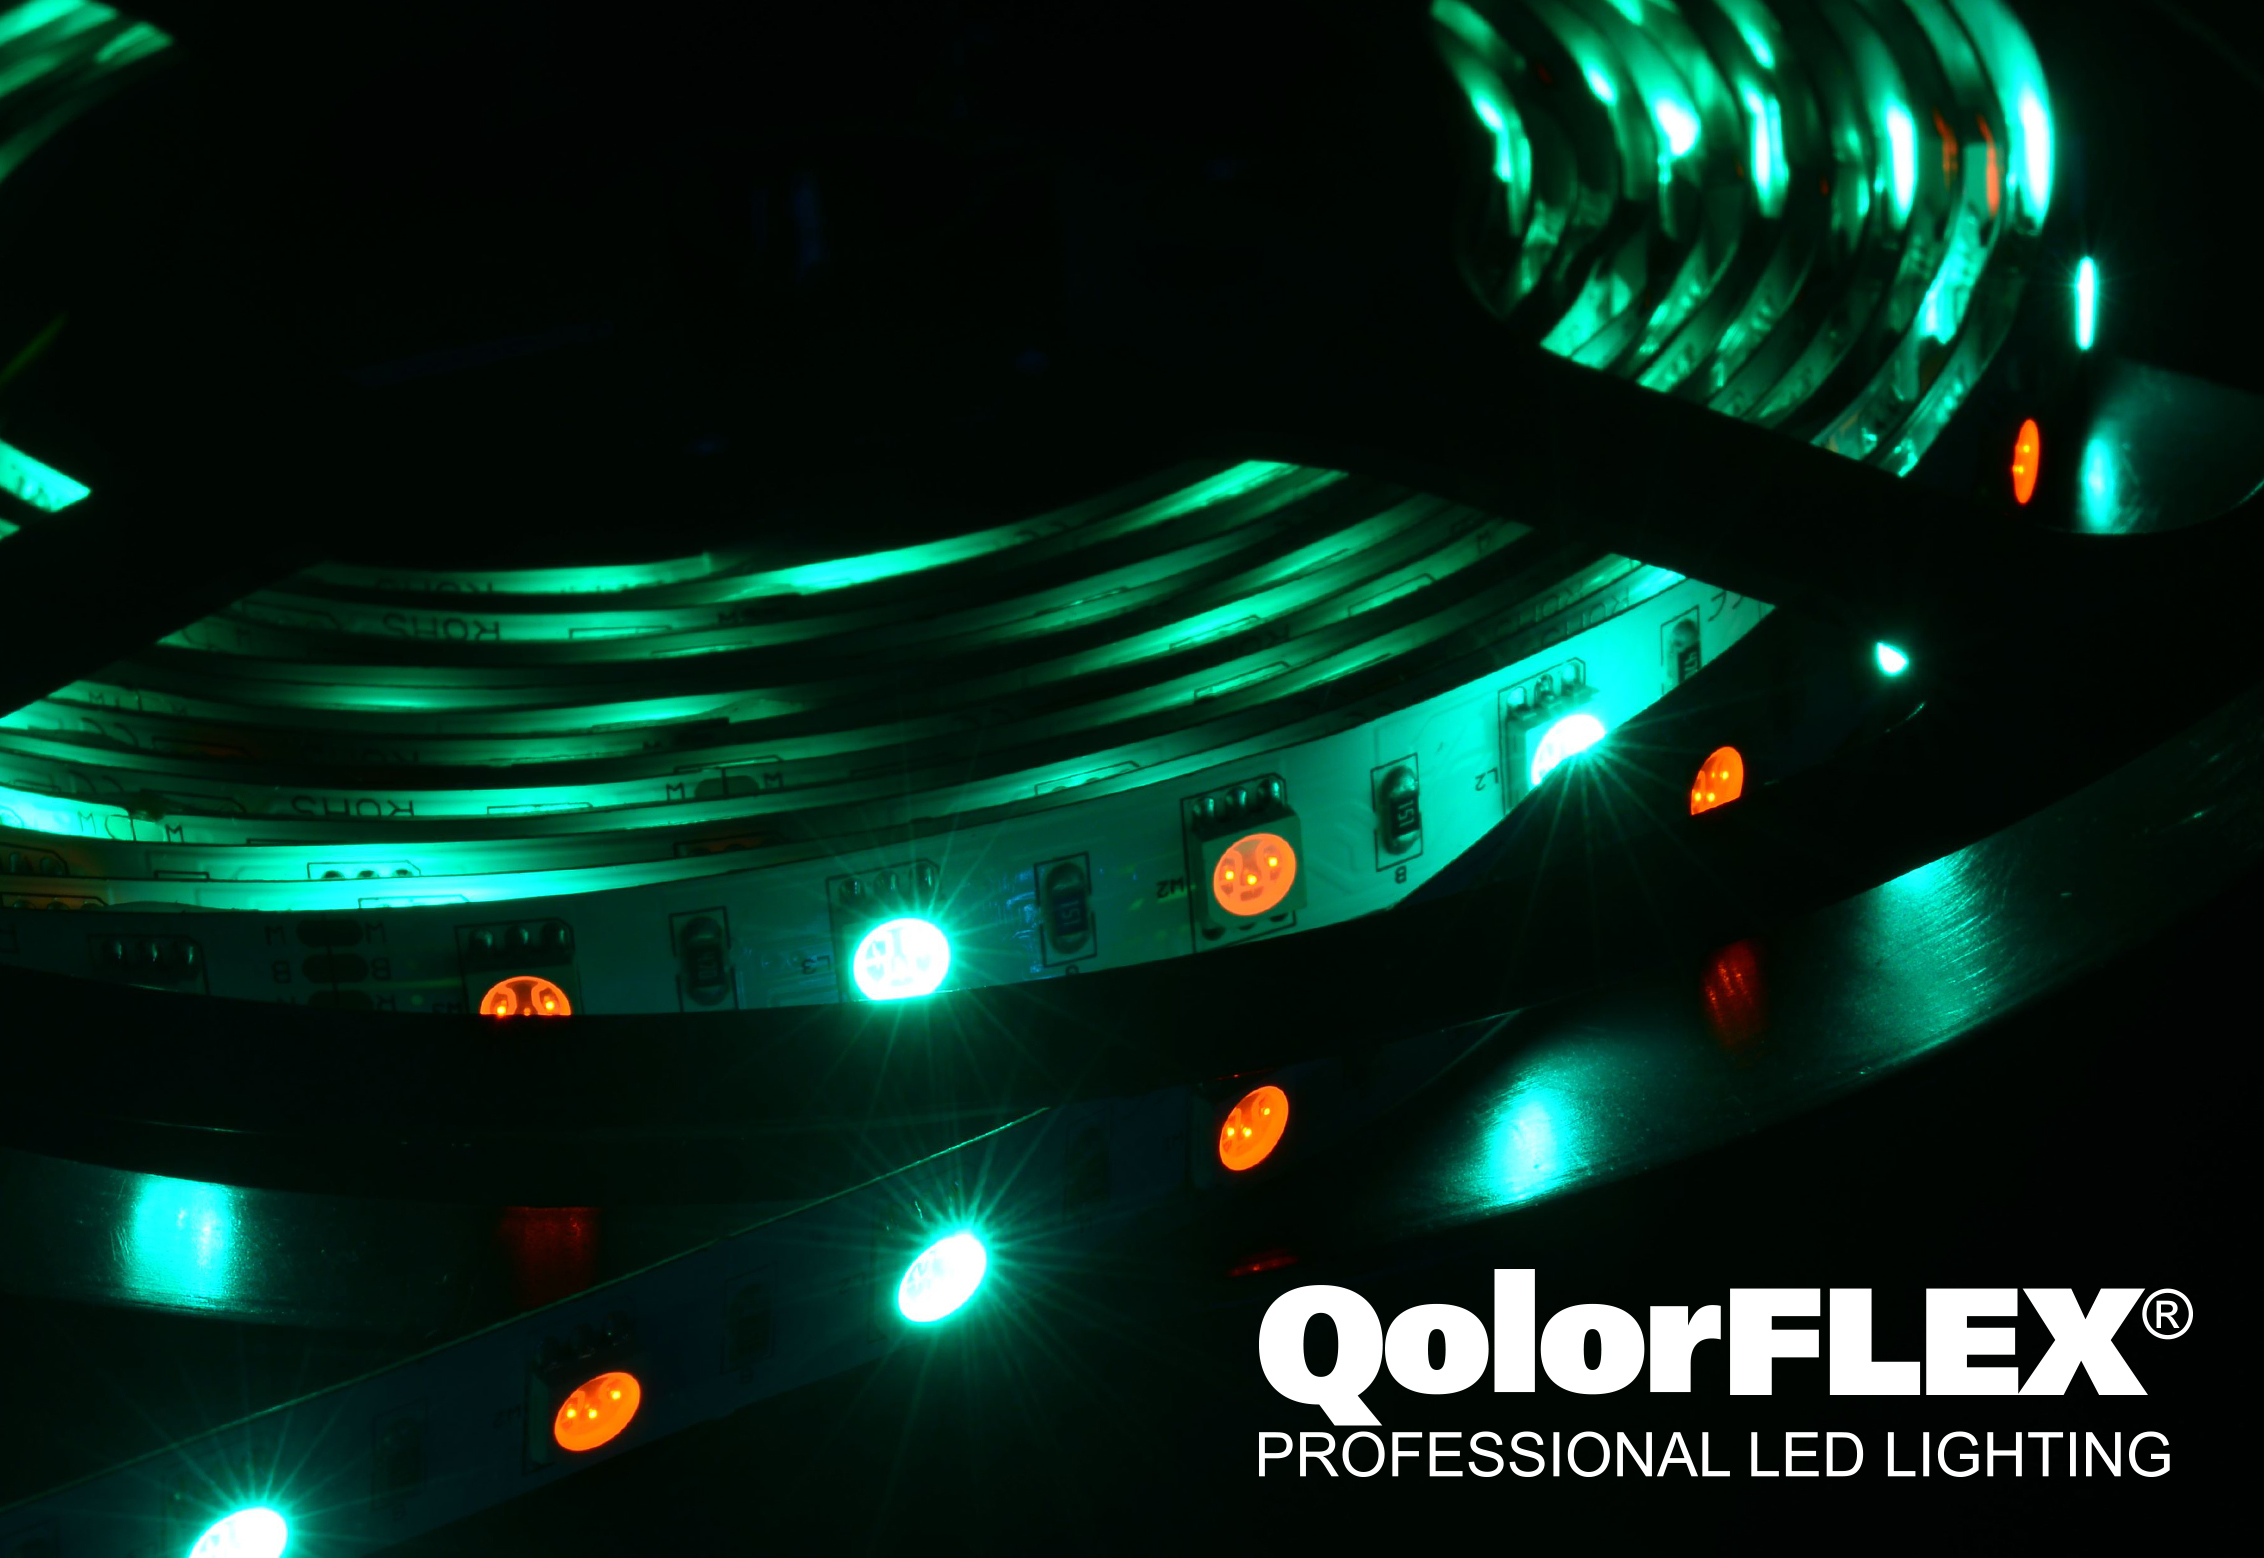 QolorFLEX LED Tape close up - green hue